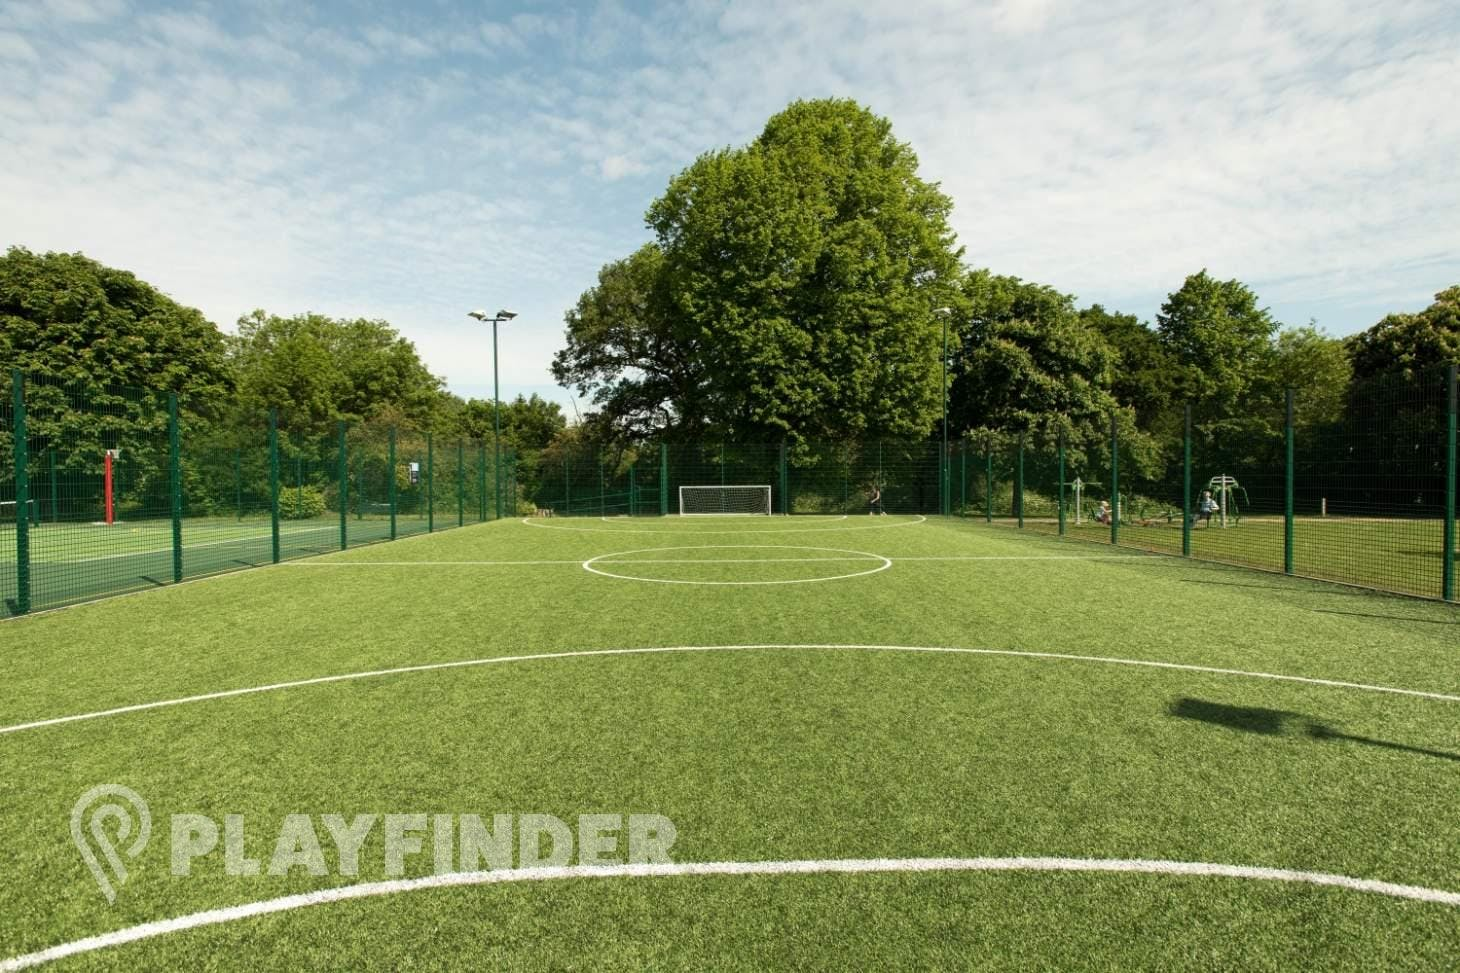 Will to Win Pitshanger Park 5 a side | 3G Astroturf football pitch